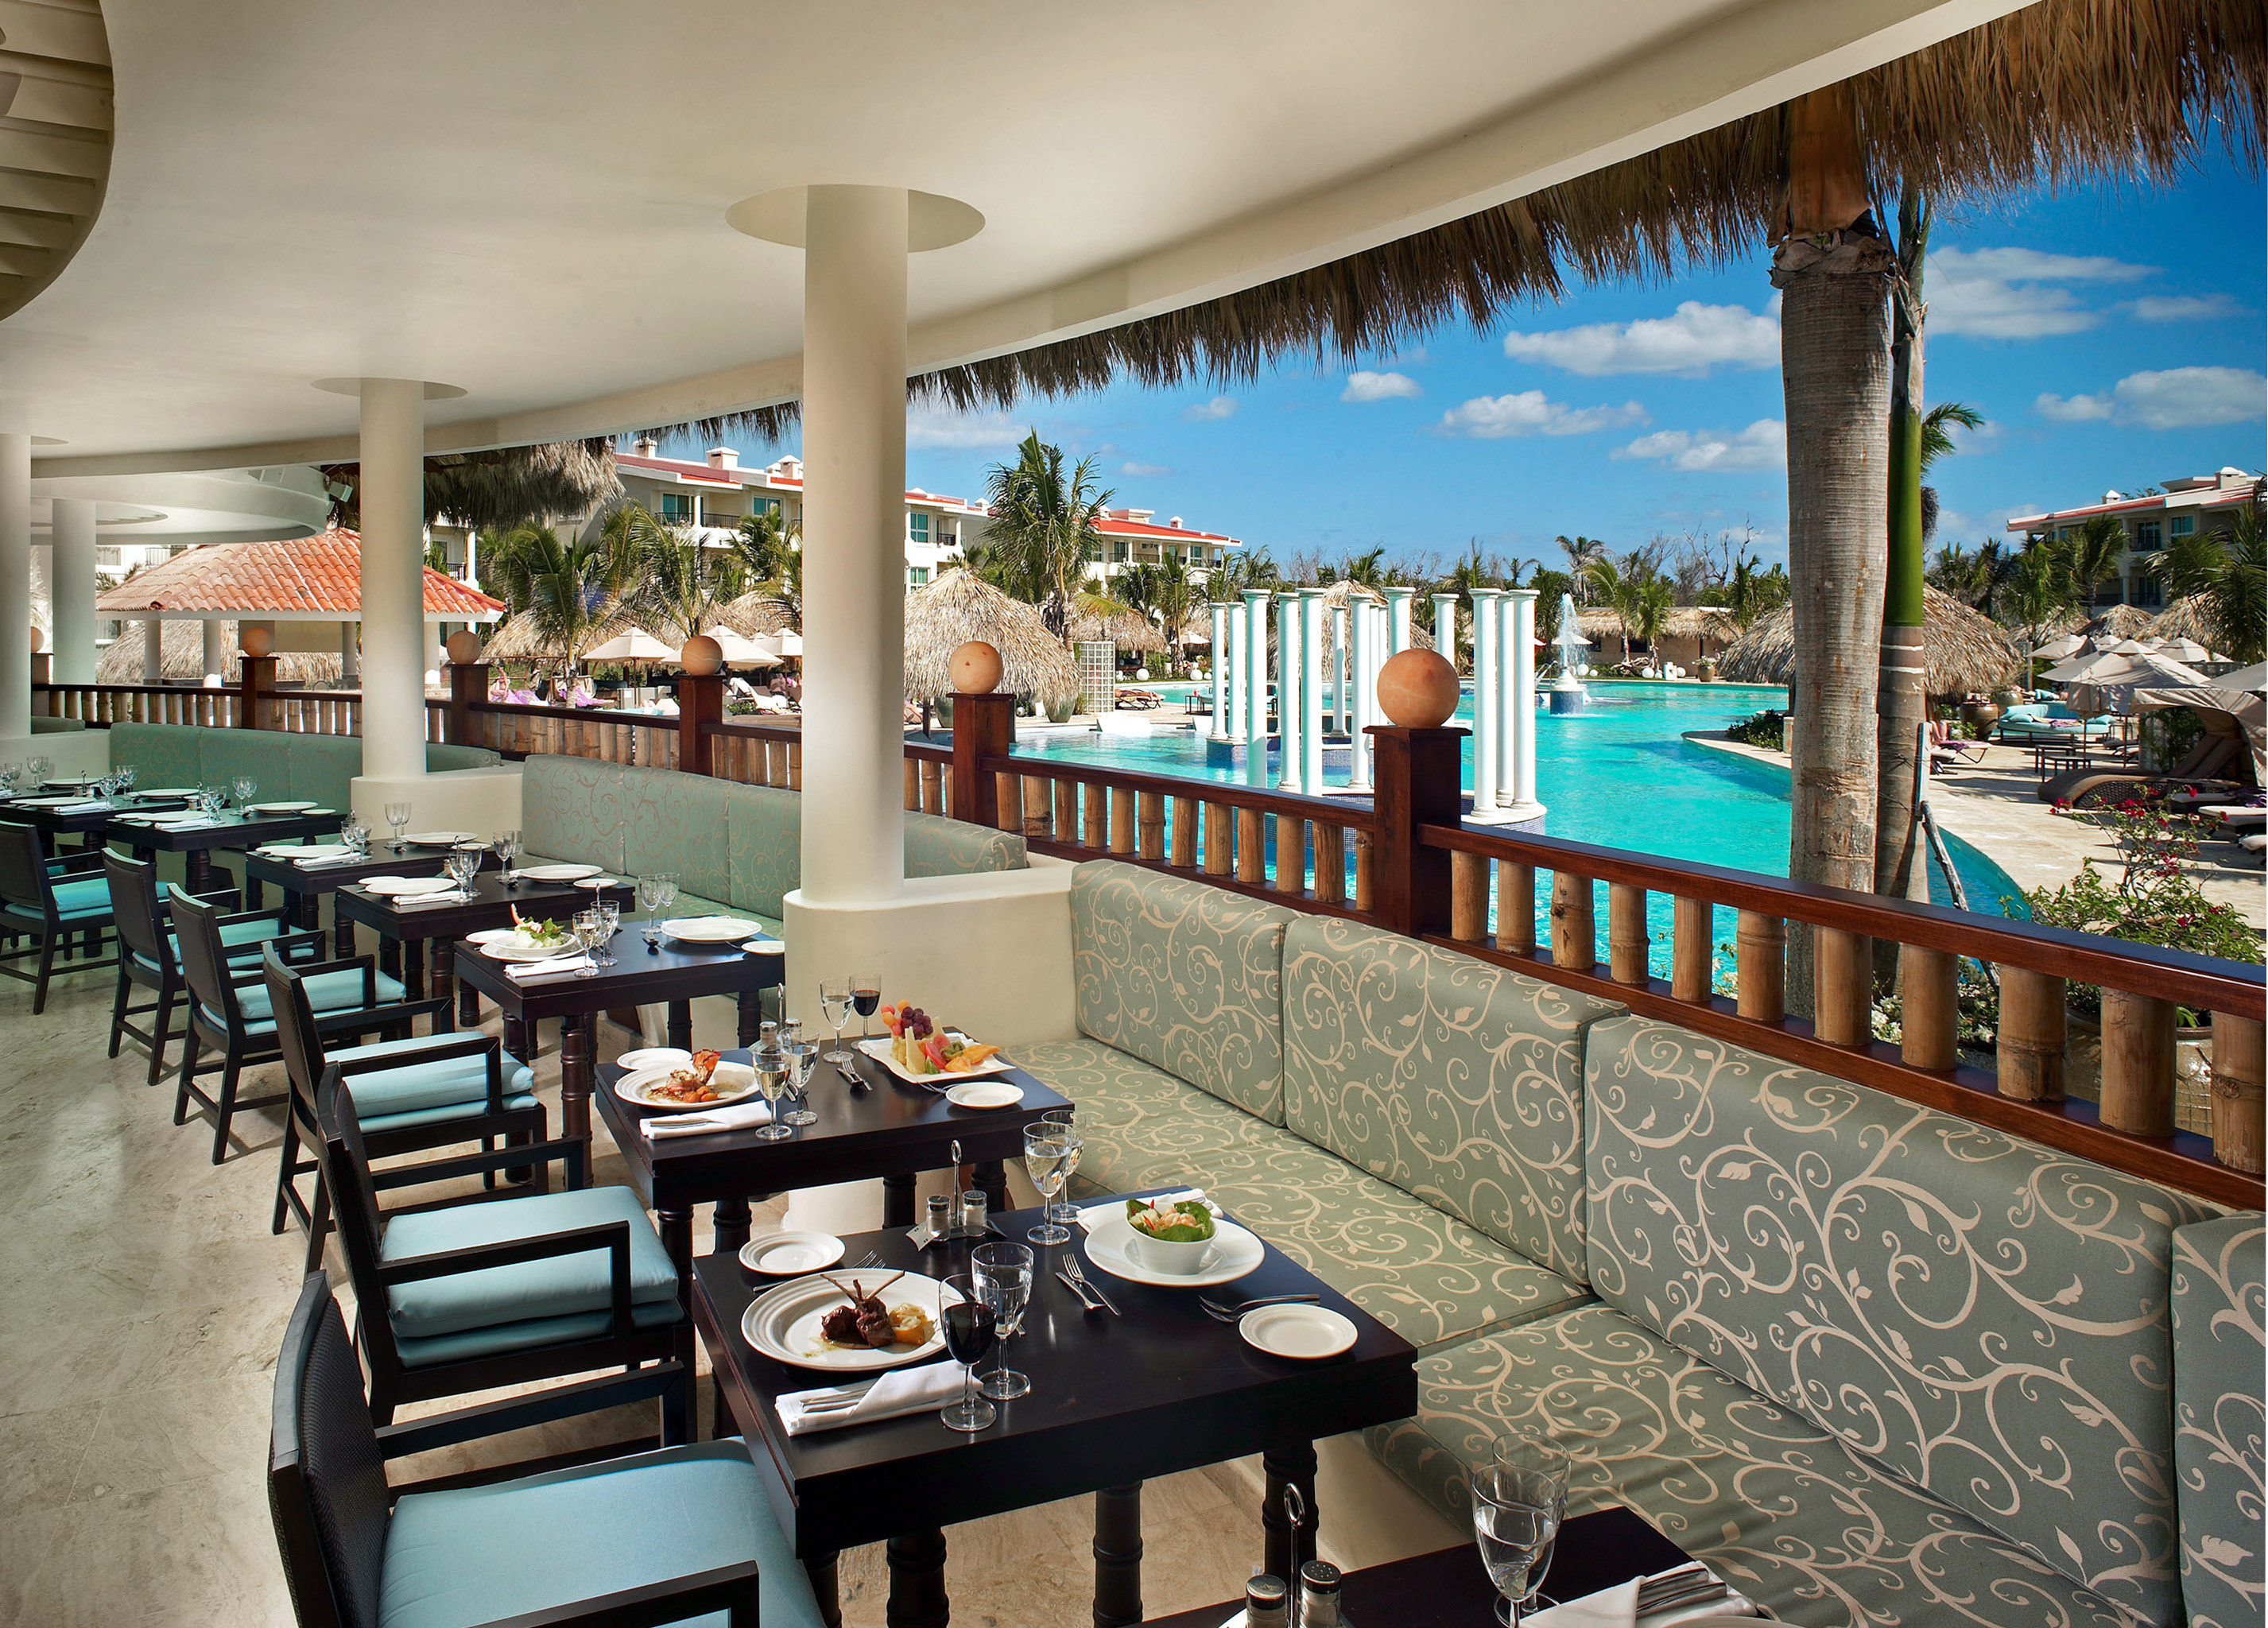 All-inclusive Balcony Dining Drink Eat Family Hotels Patio Pool Resort Terrace table chair floor leisure property indoor restaurant ceiling vacation estate condominium interior design area furniture several